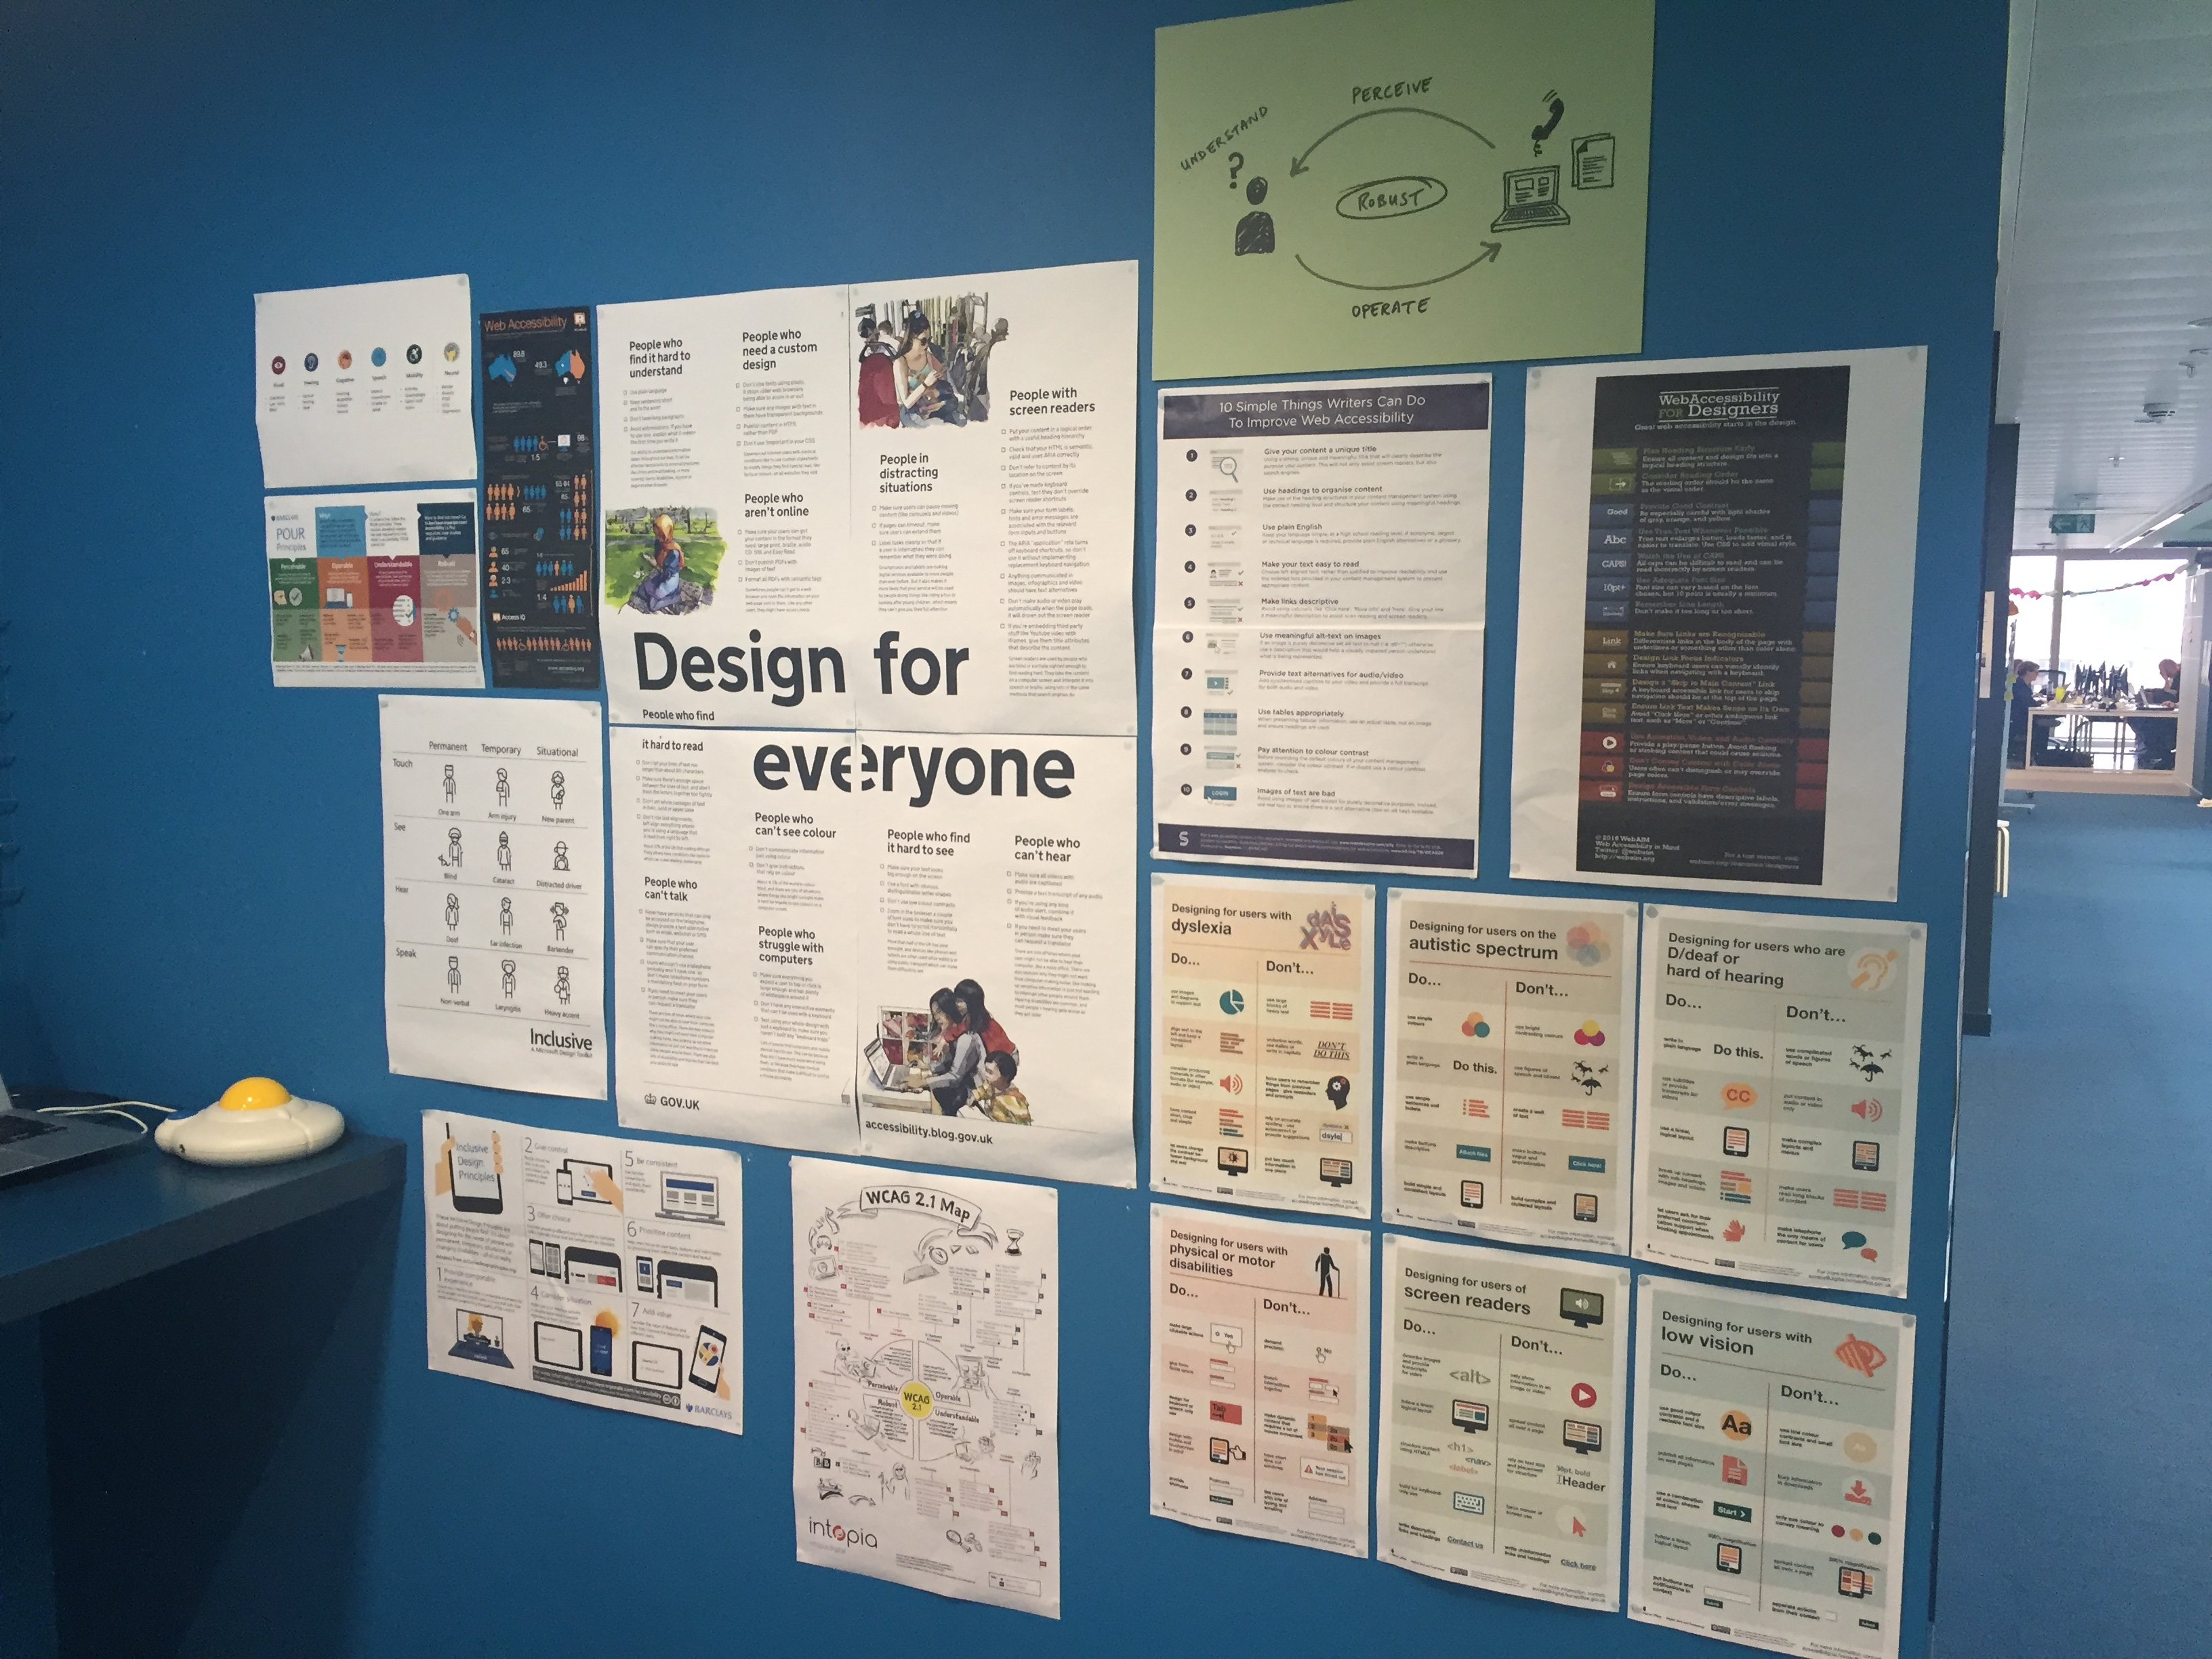 Posters showing principles of good design for accessibility